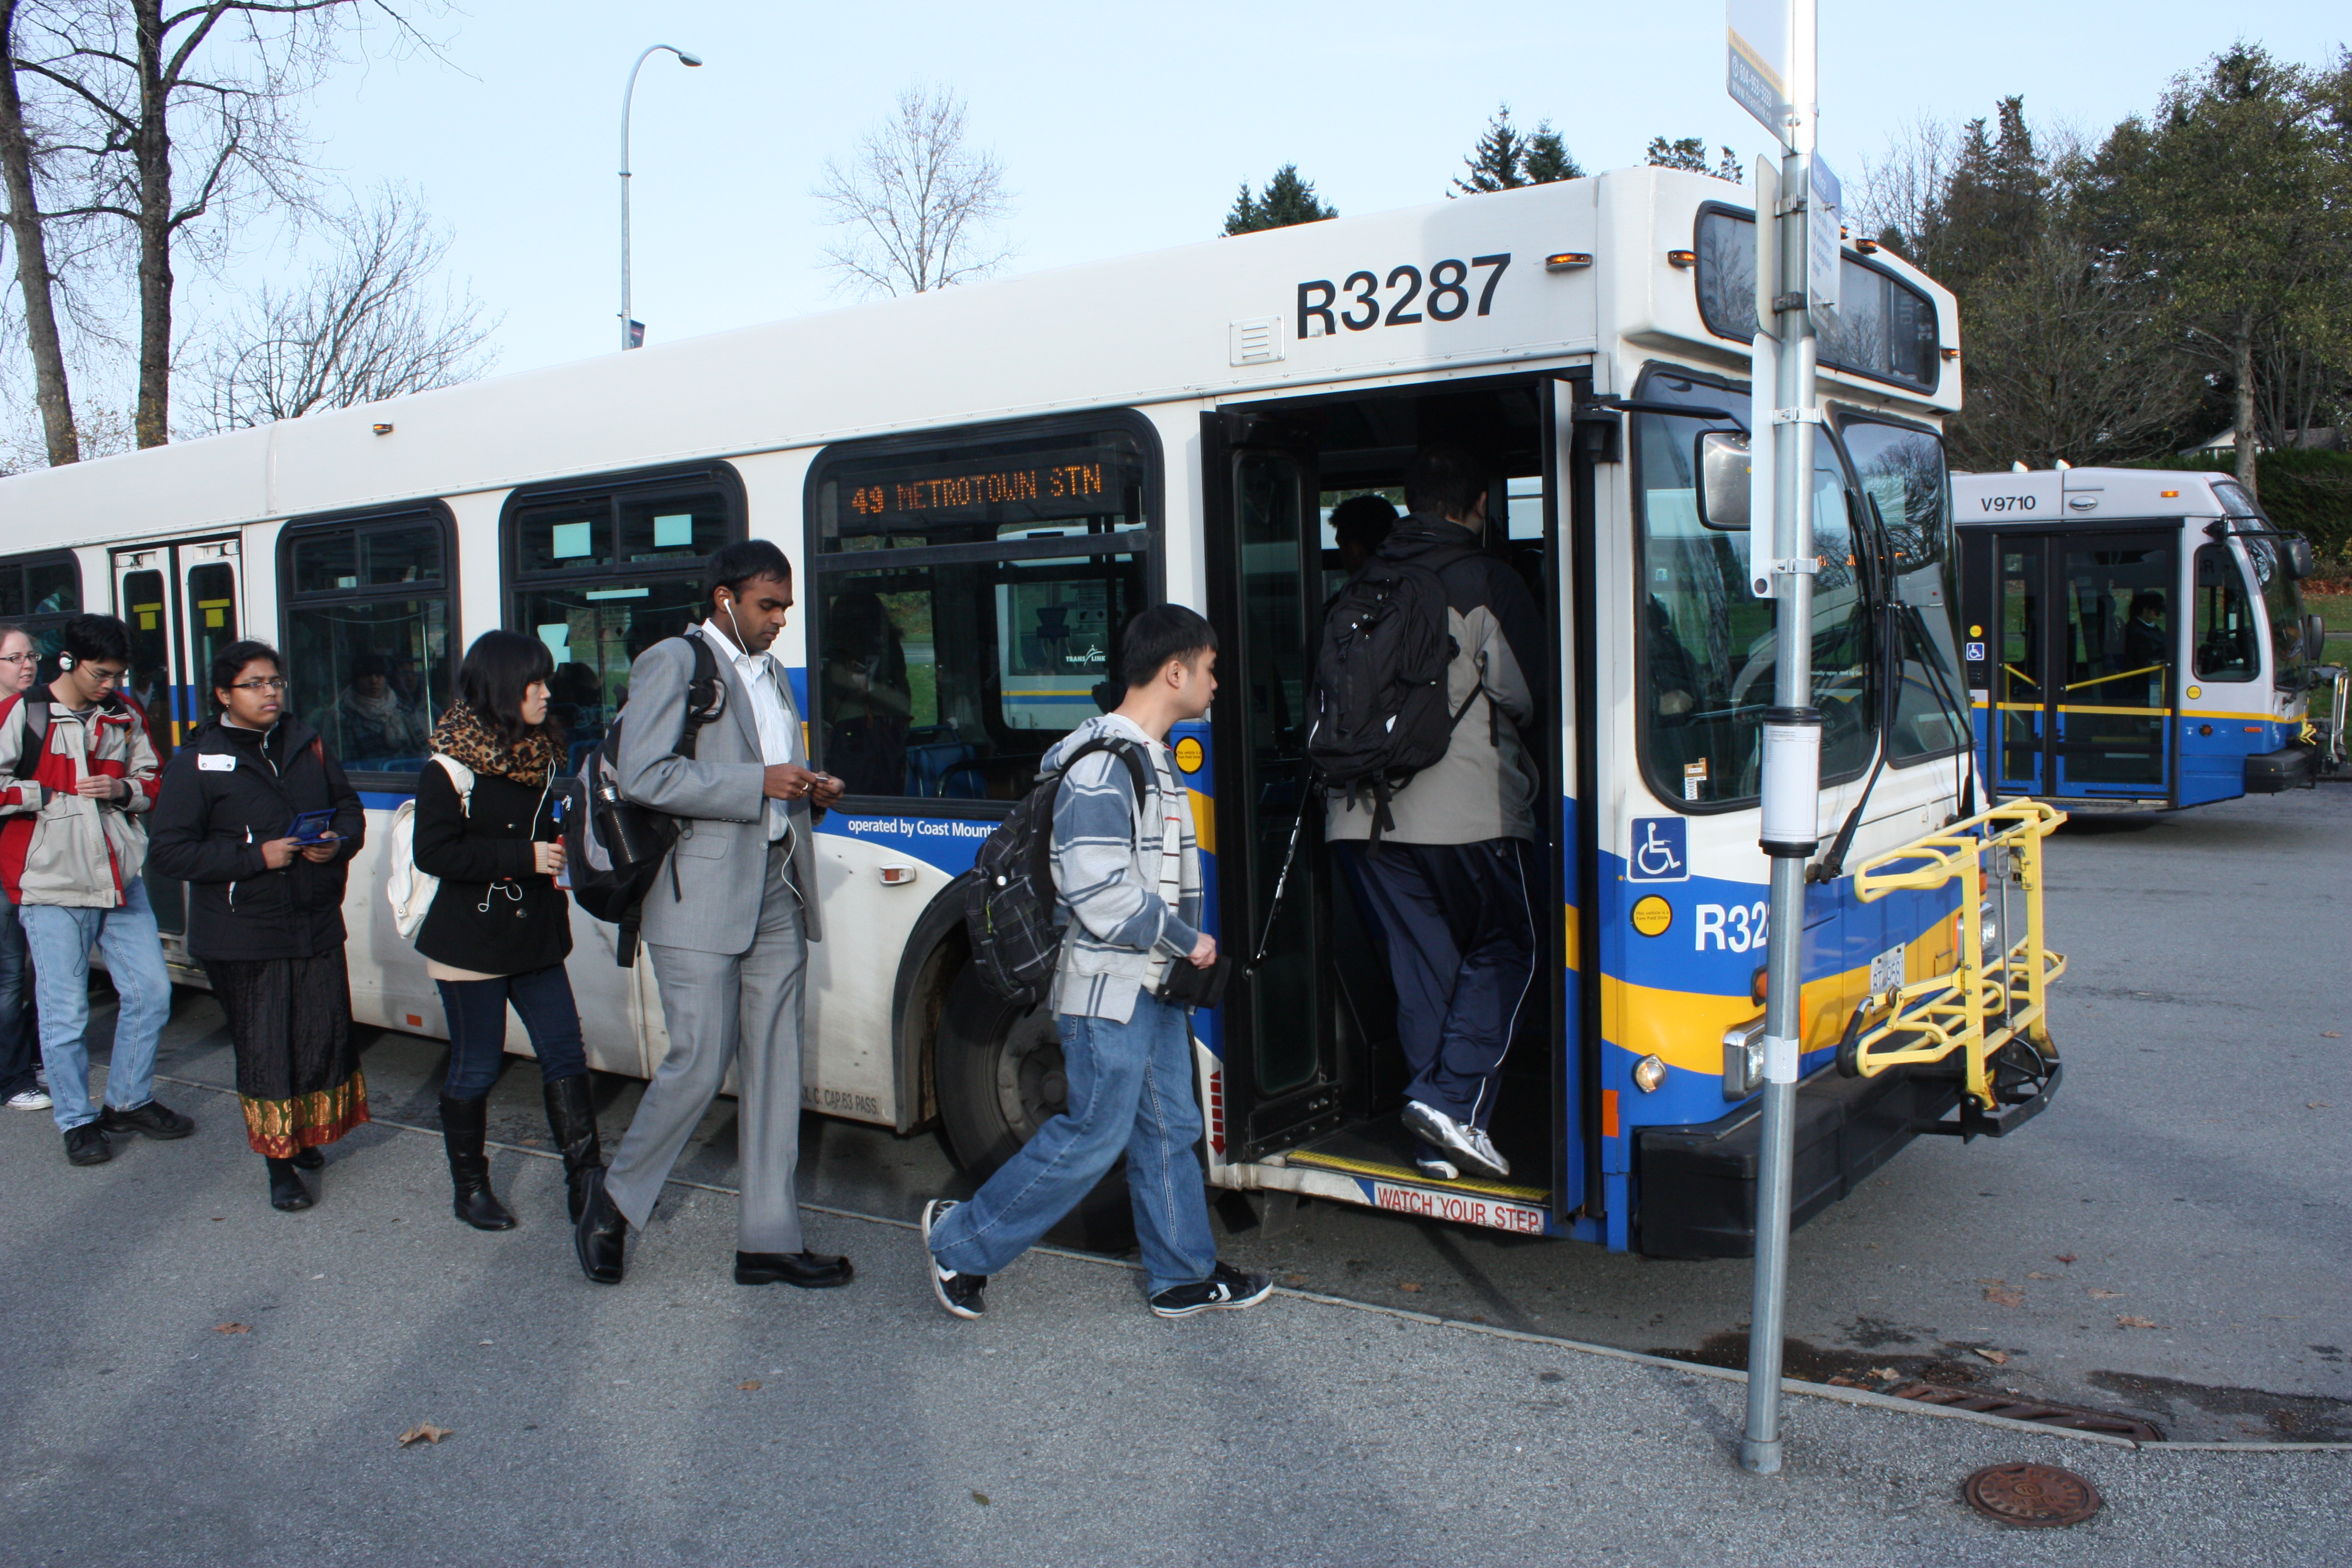 Boarding_the_bus.